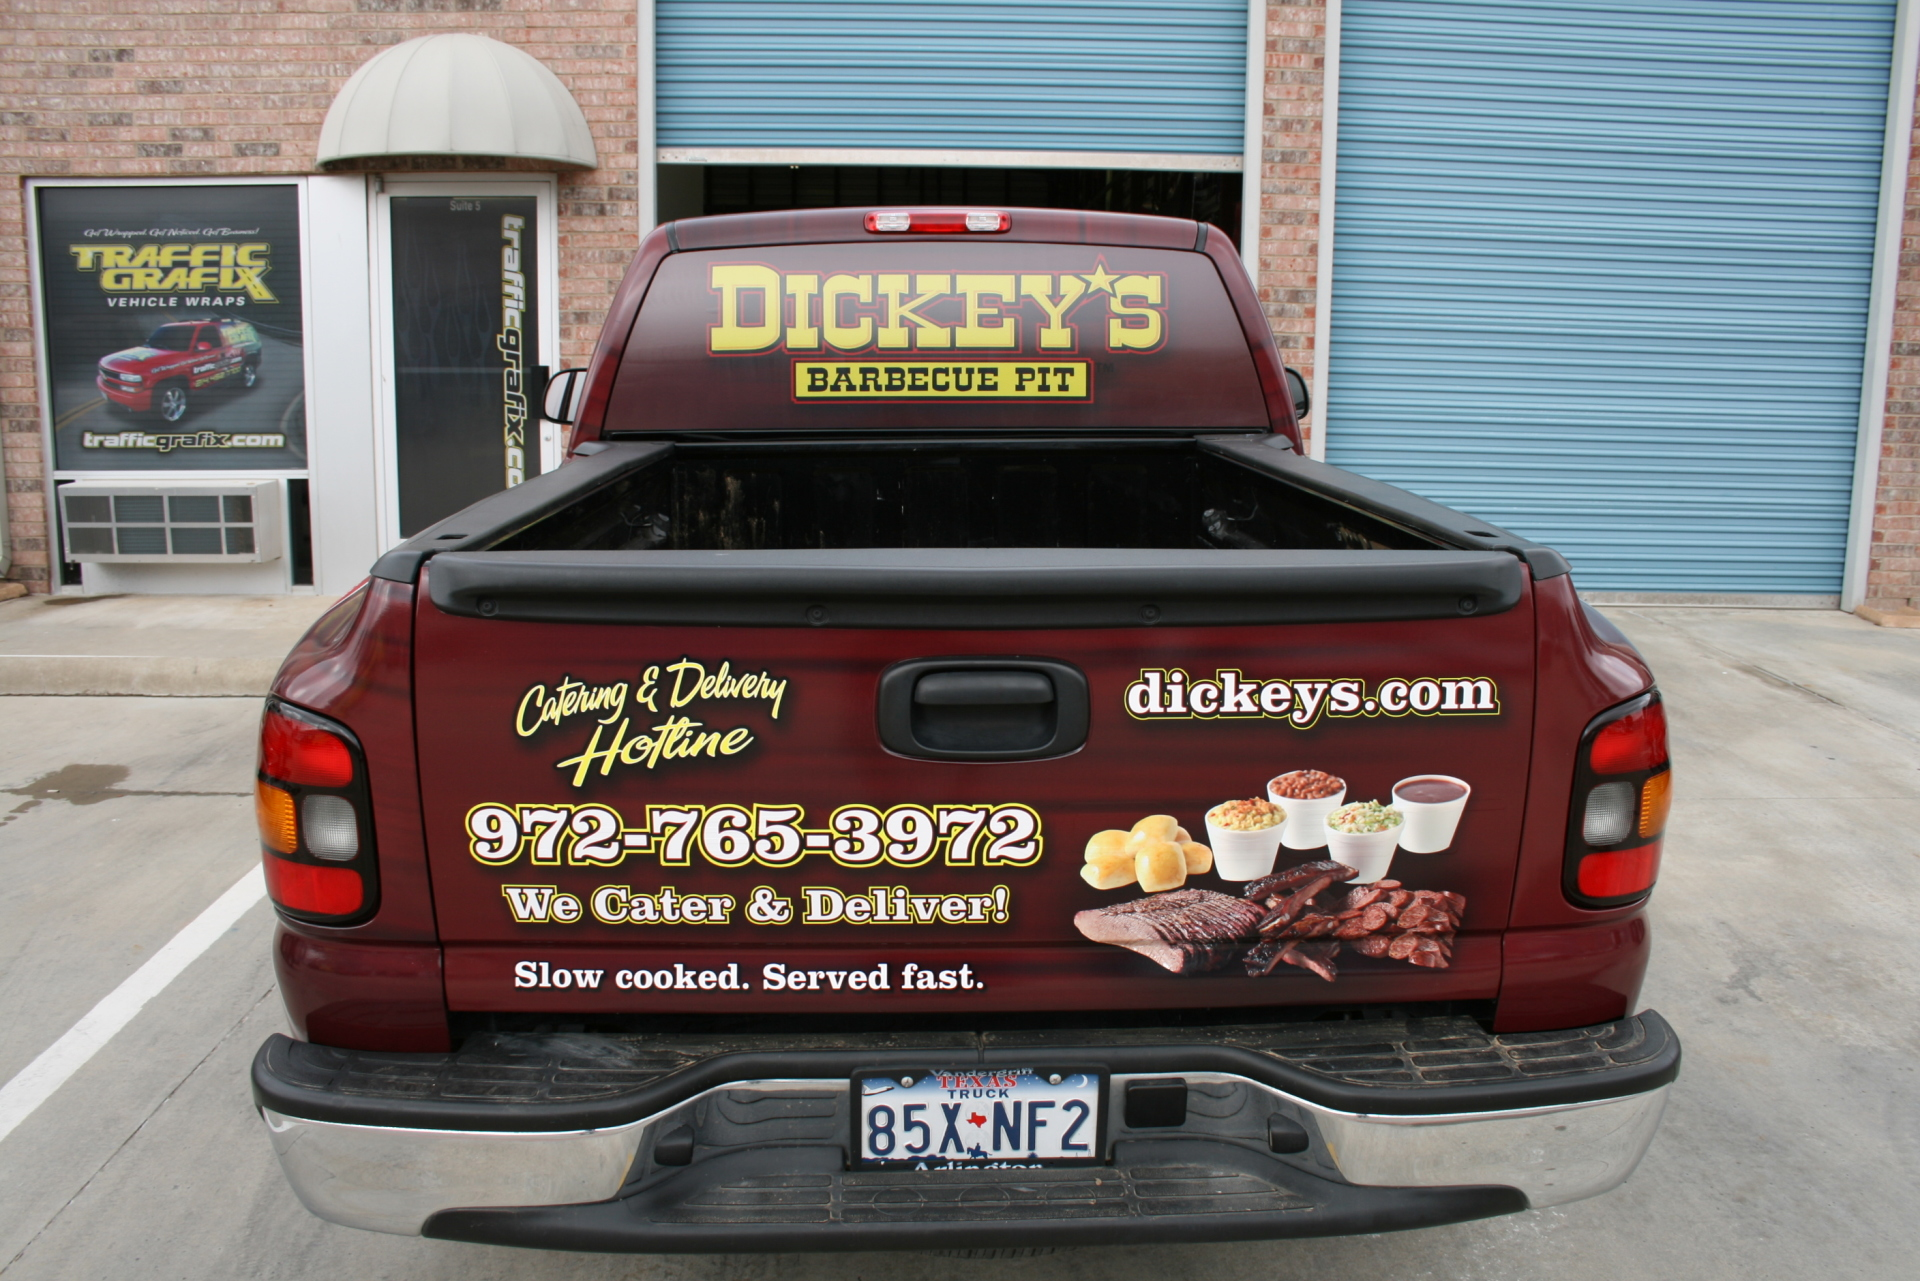 Dickey's Coppell TX,  Dickey's Vehicle Wraps, Vehicle Wraps Dallas TX